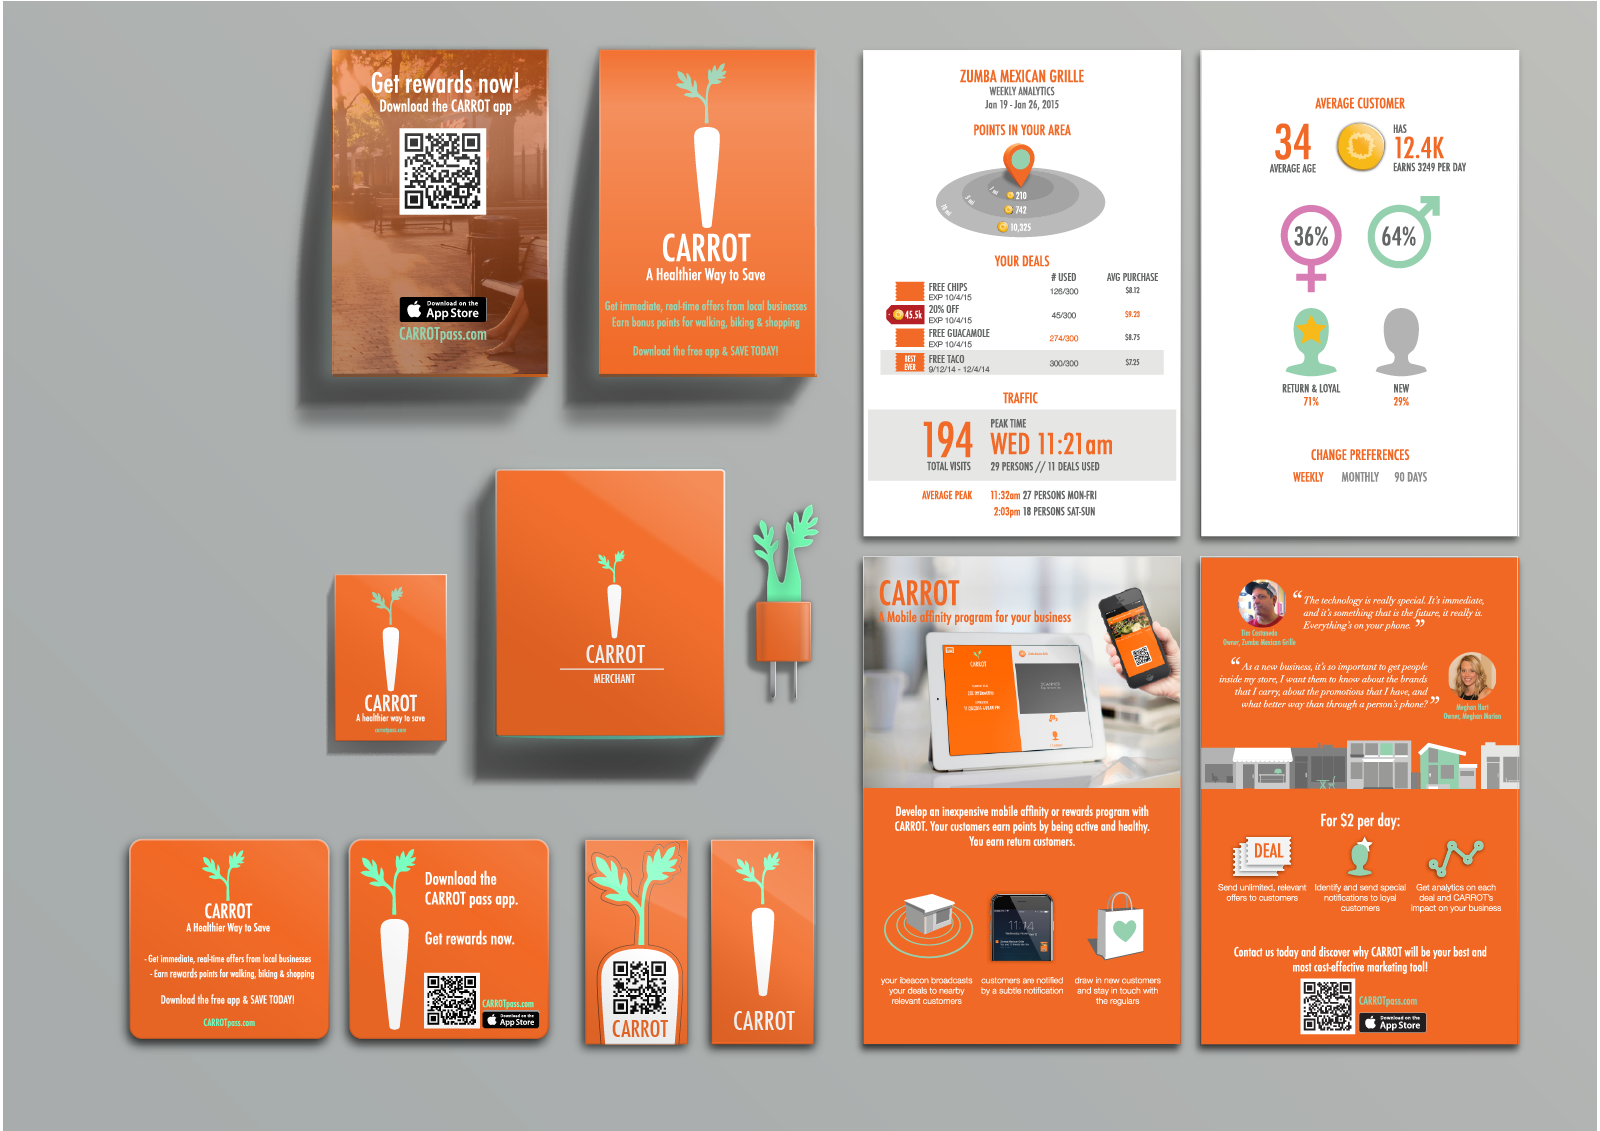 Printed materials for CARROTmerchants and marketing